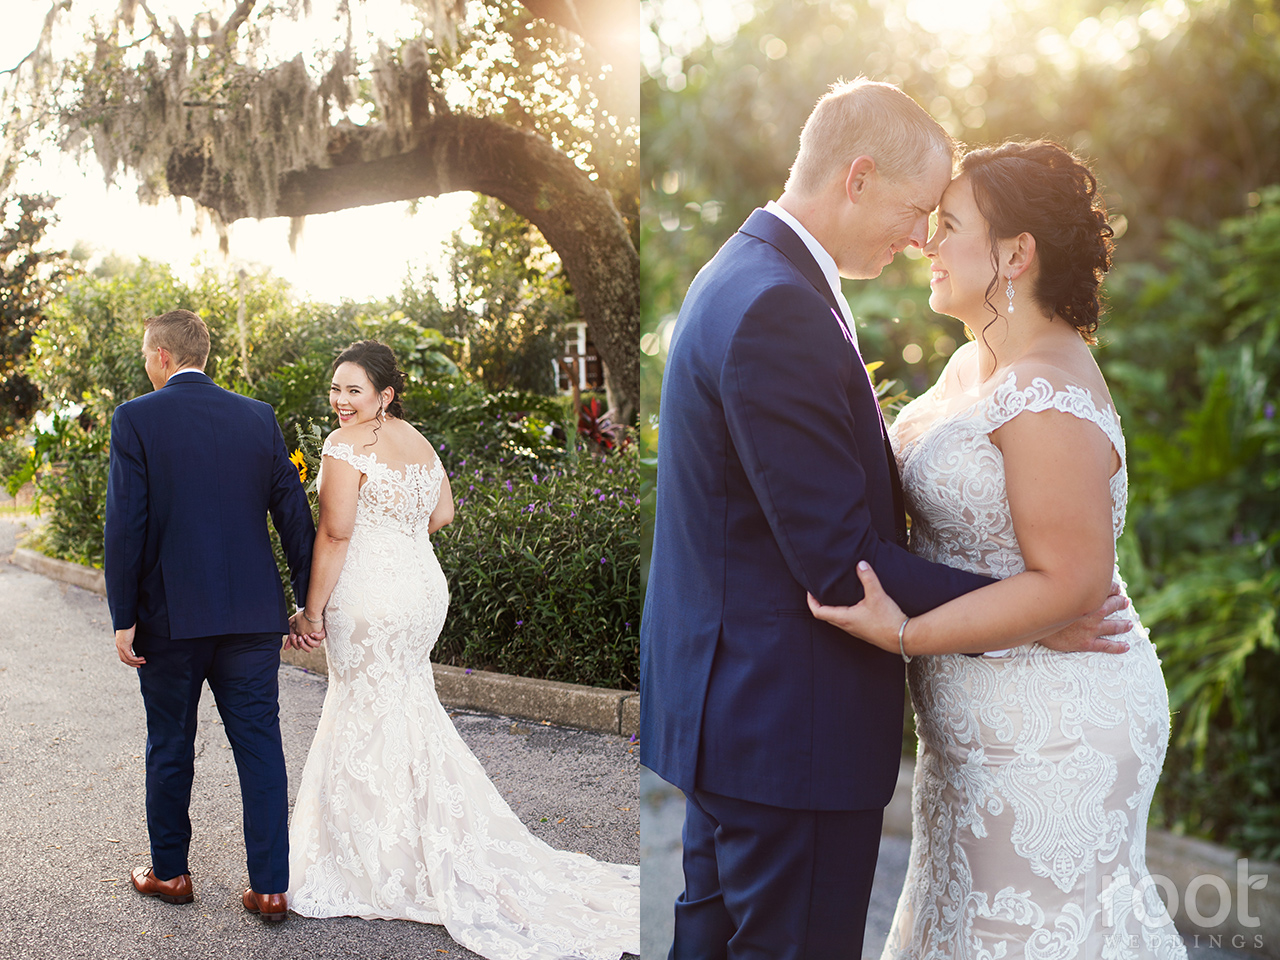 Bride and groom portraits at Dubsdread in Orlando